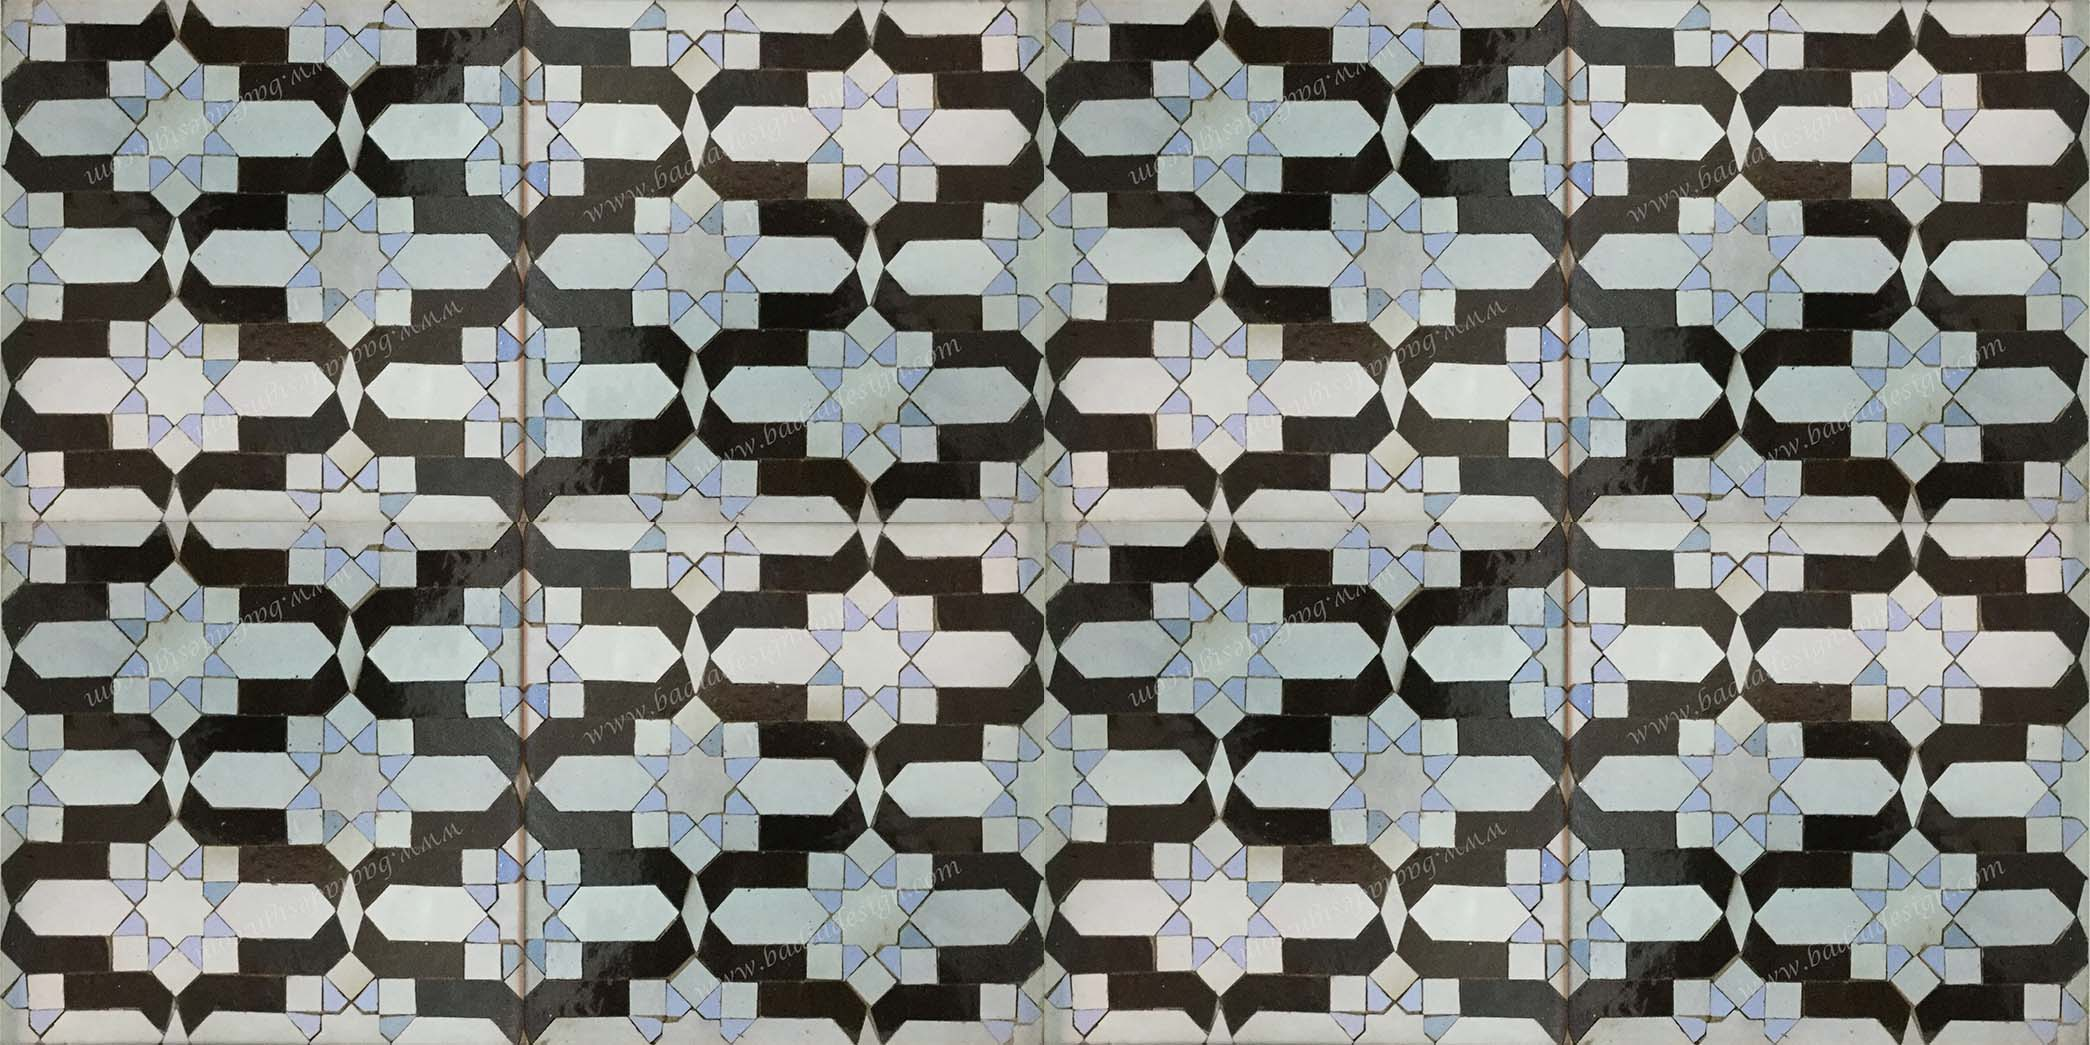 Moroccan zellij tile from badia design inc moroccan mosaic floor tile dailygadgetfo Image collections